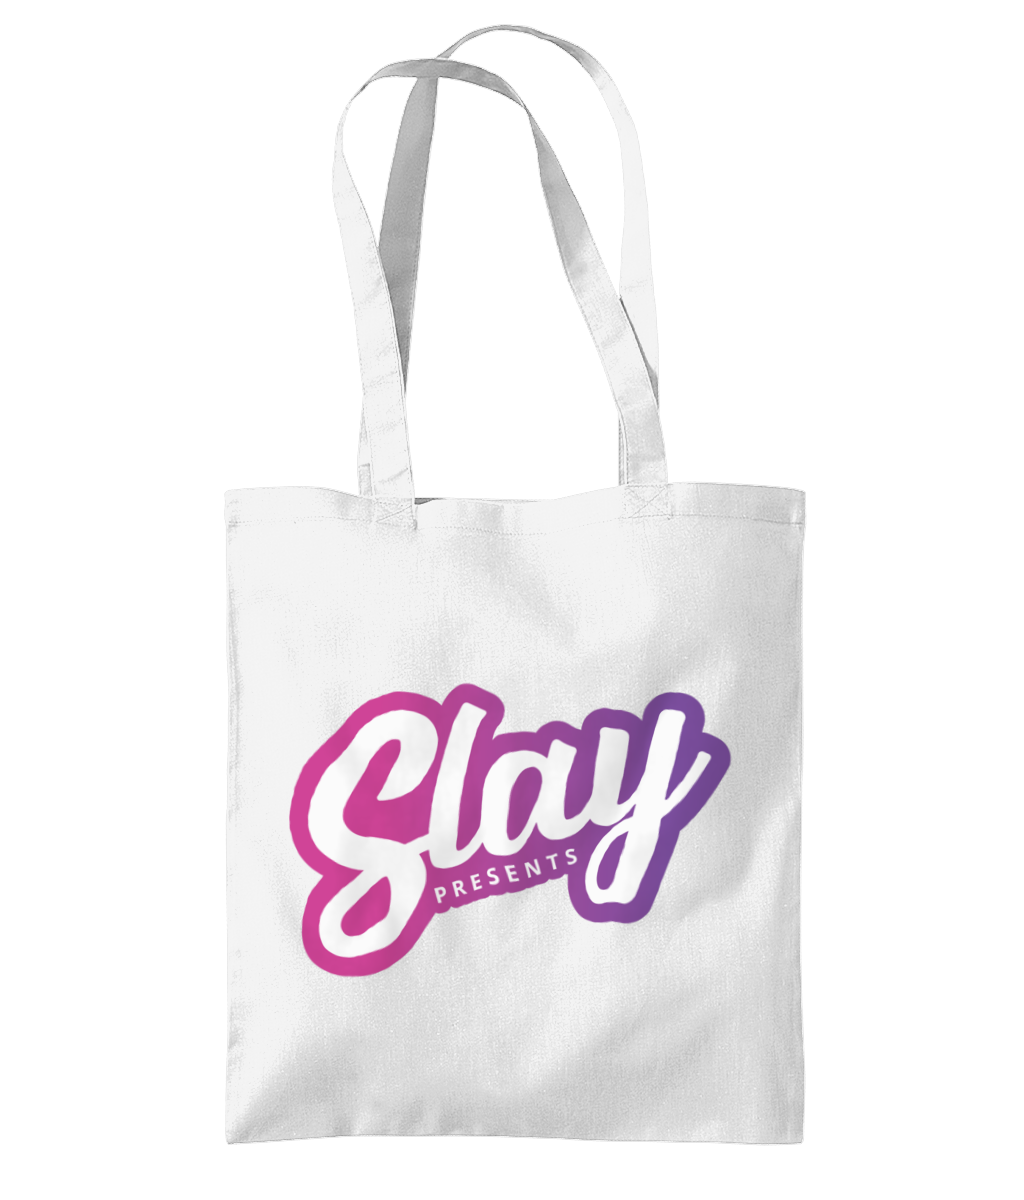 Slay! Presents Tote Bag - SNATCHED MERCH